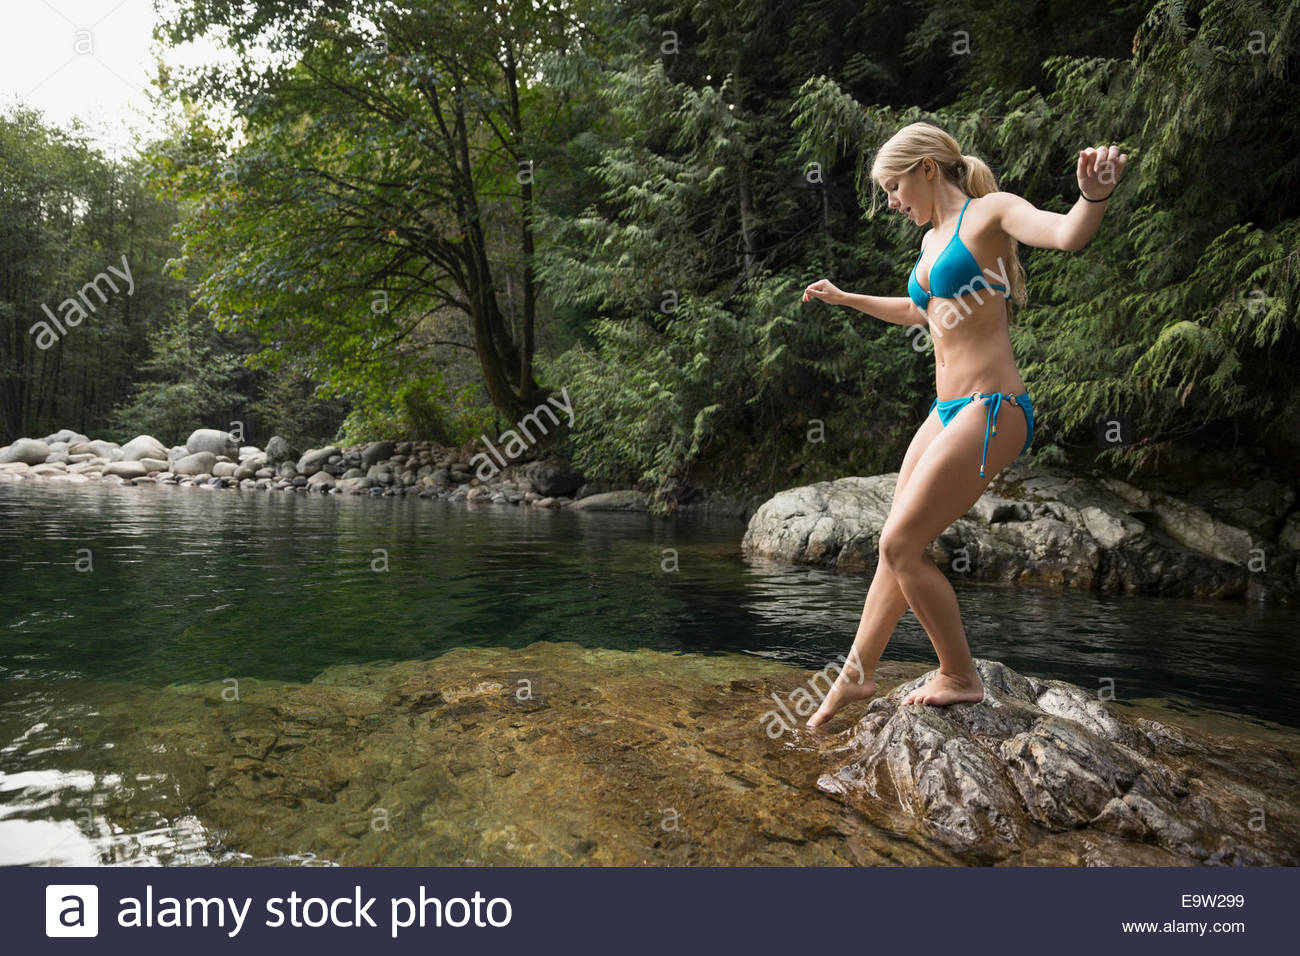 Young woman in bikini dipping toe in water - Stock Image